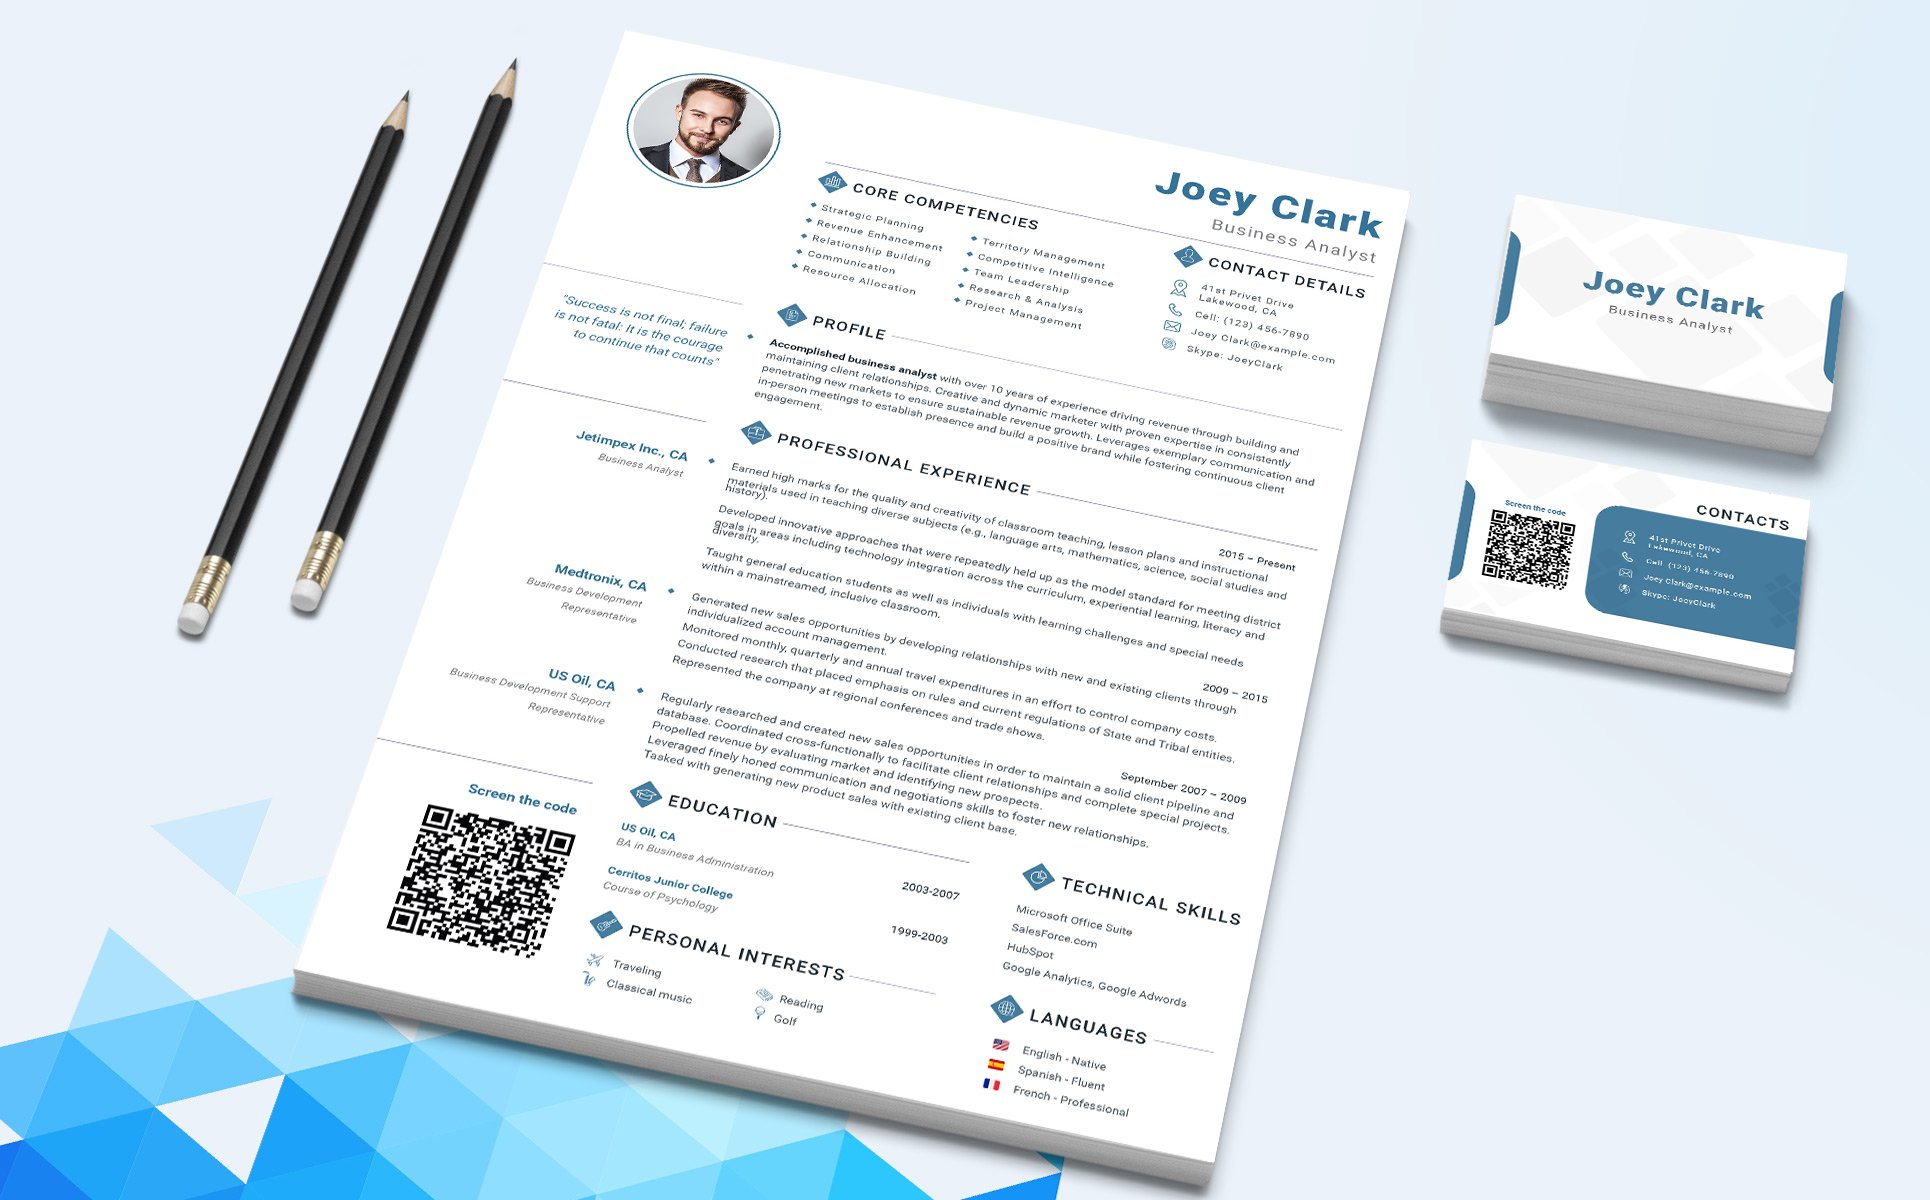 Joey Clark - Business Analyst and Financial Consultant Resume ...